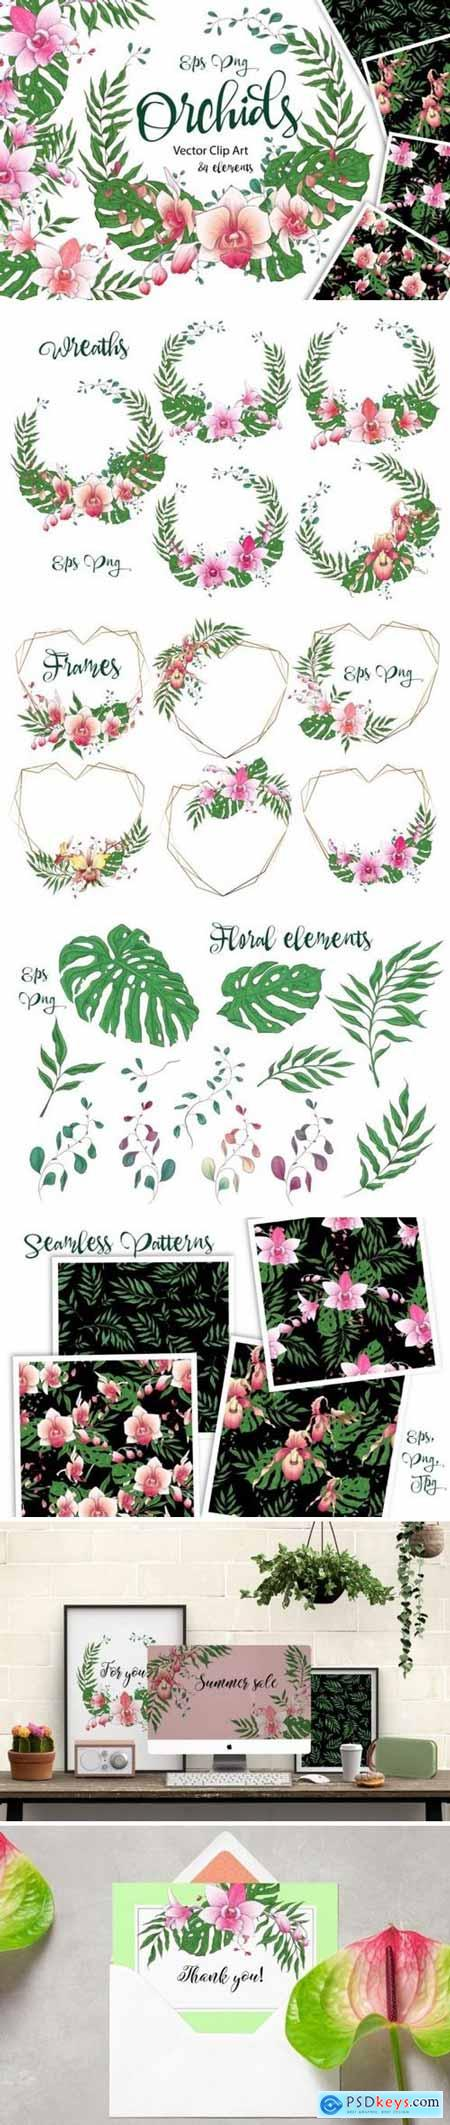 Orchids - Graphics